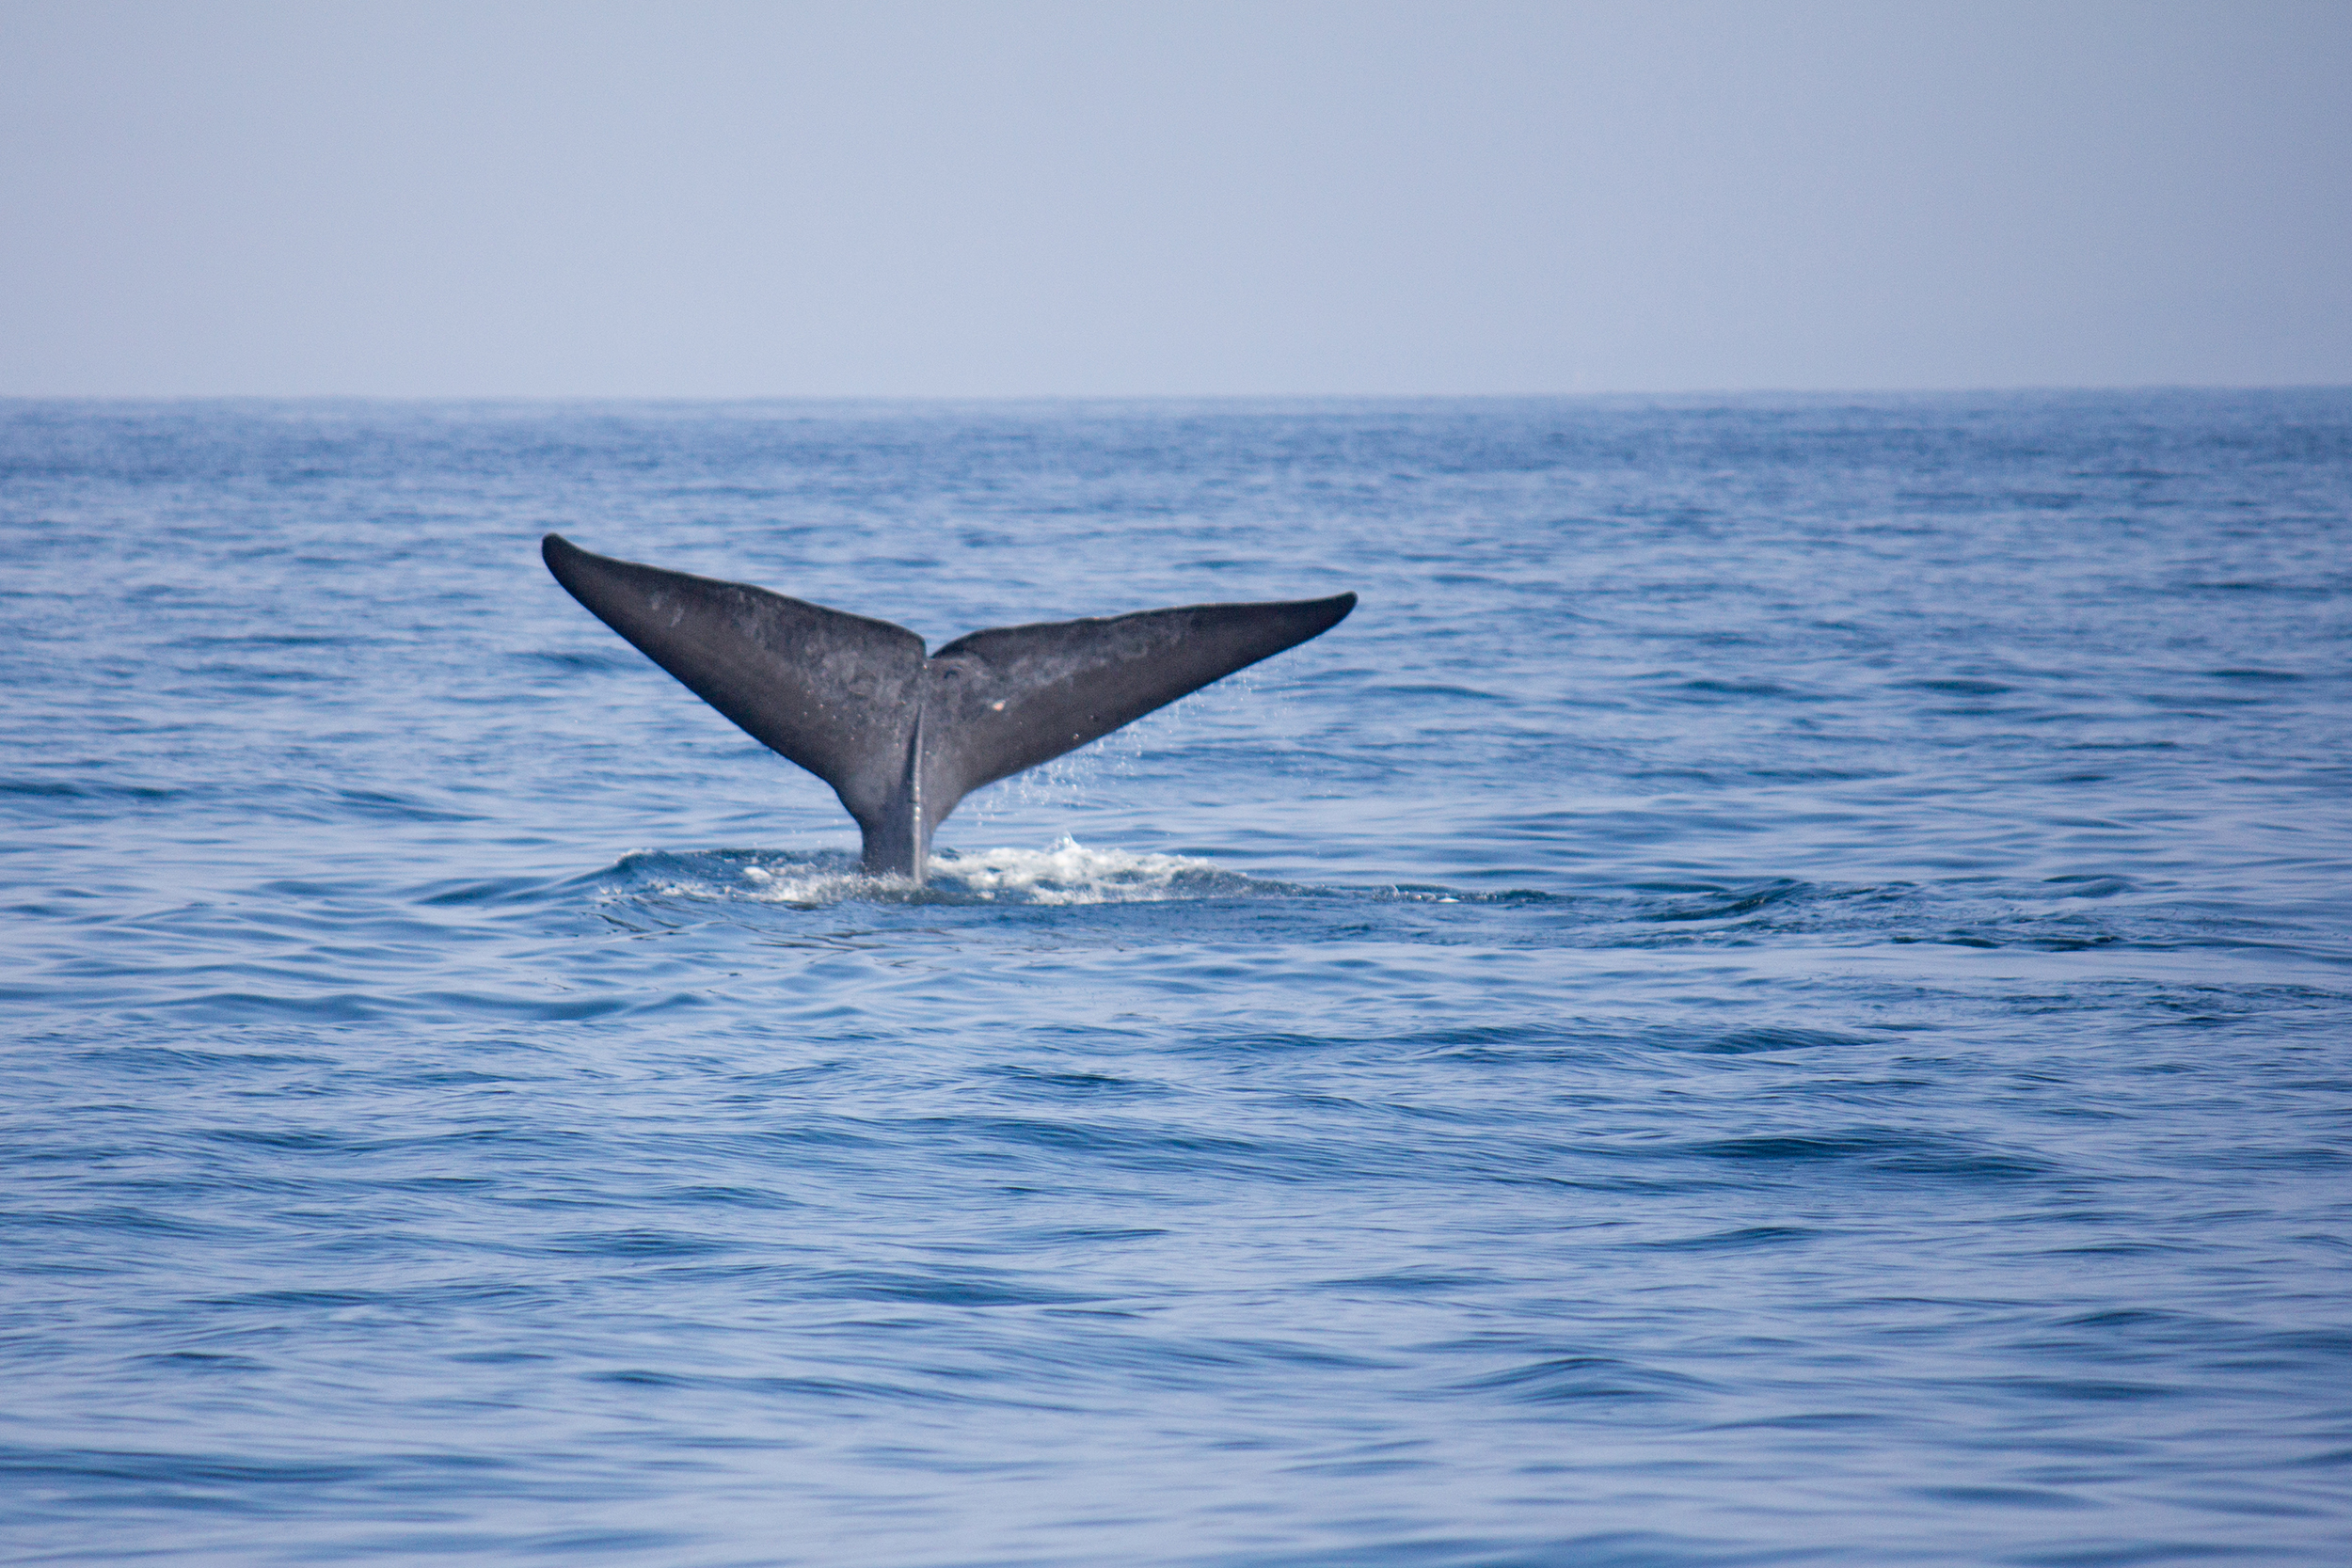 Spotting whales in Sri Lanka